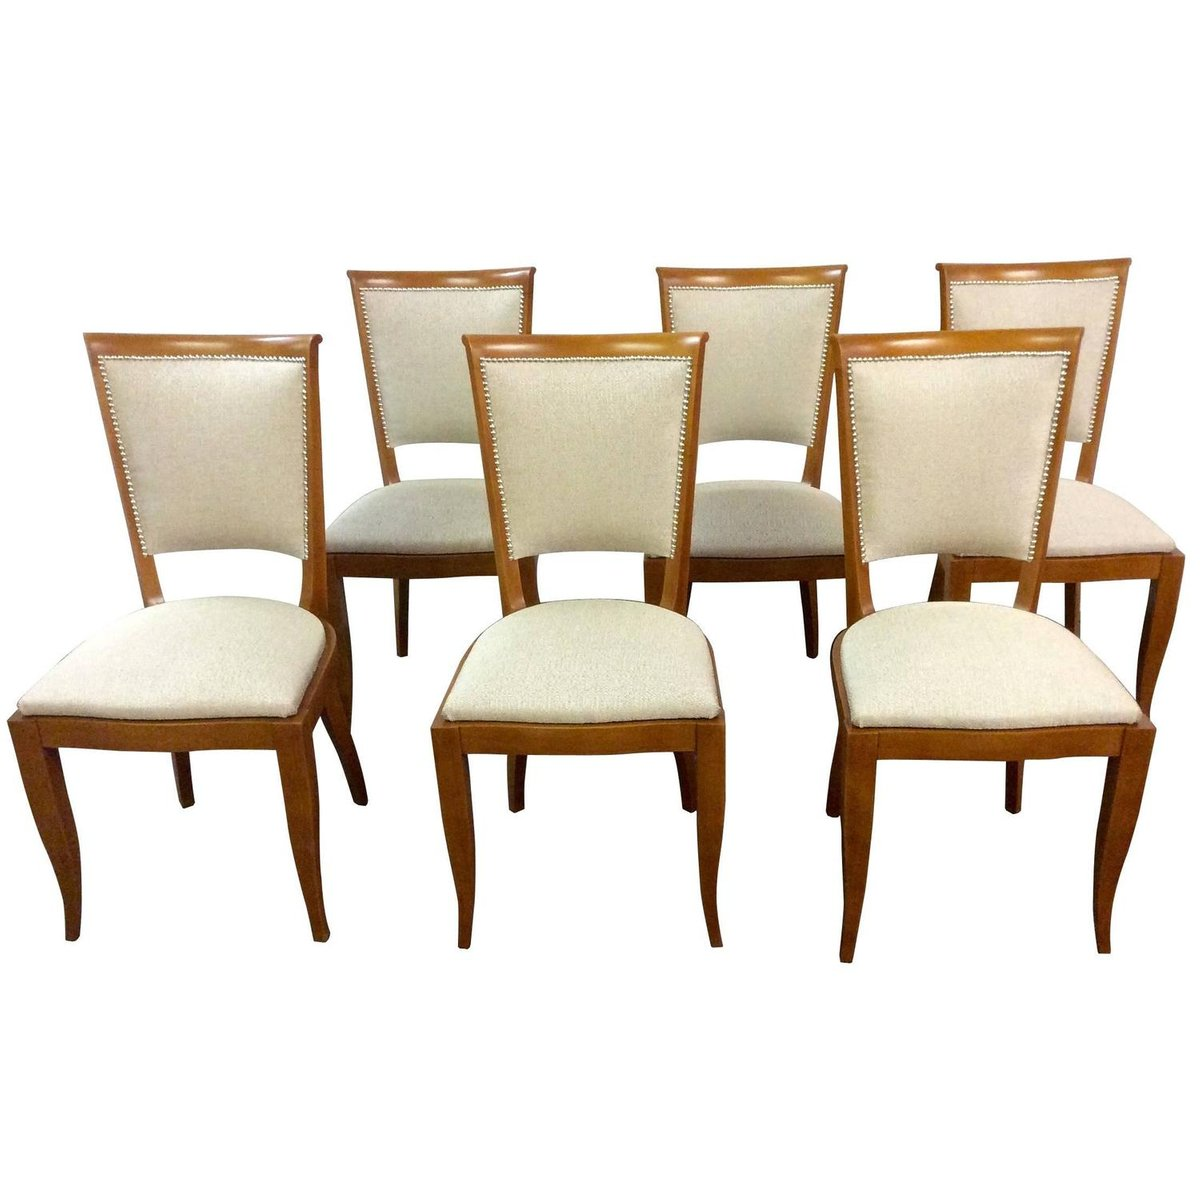 Art Deco French Dining Chairs 1930s Set Of 6 For Sale At